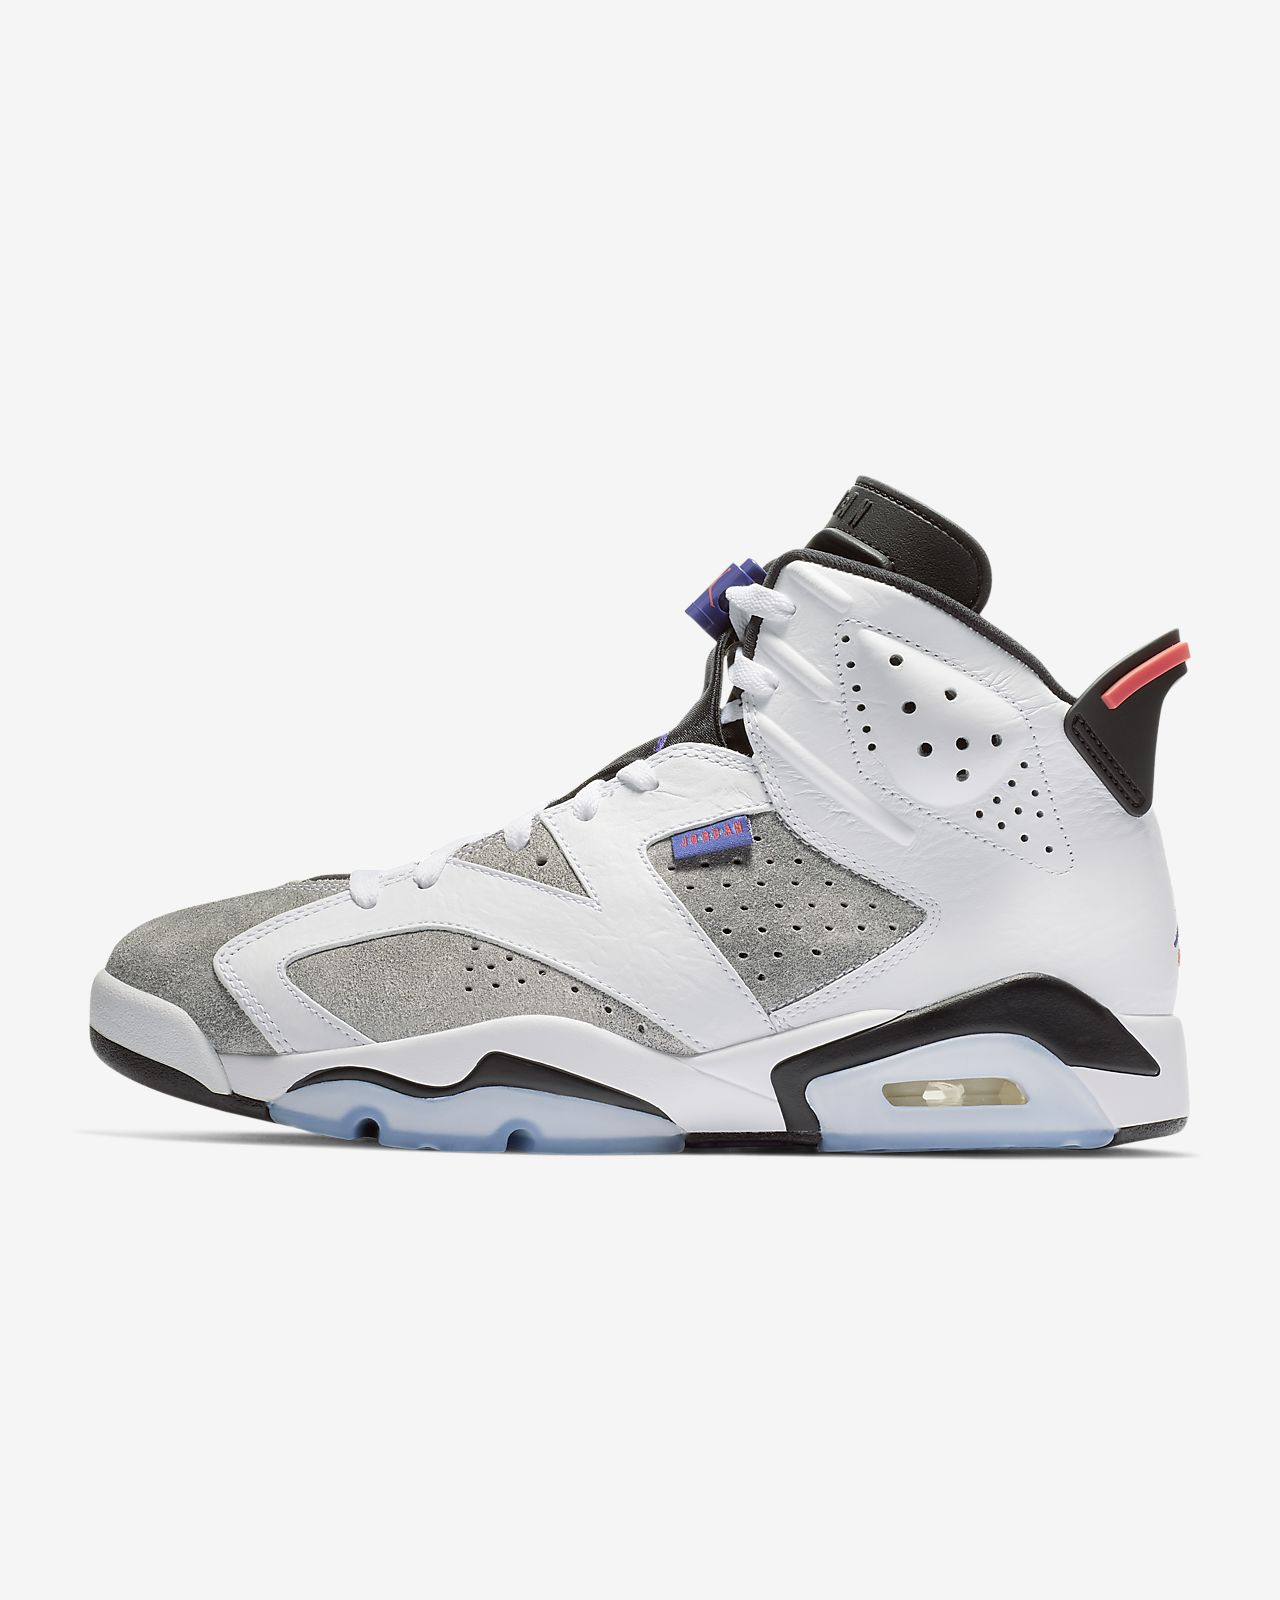 41e4d79f16a895 Air Jordan 6 Retro Men s Shoe. Nike.com